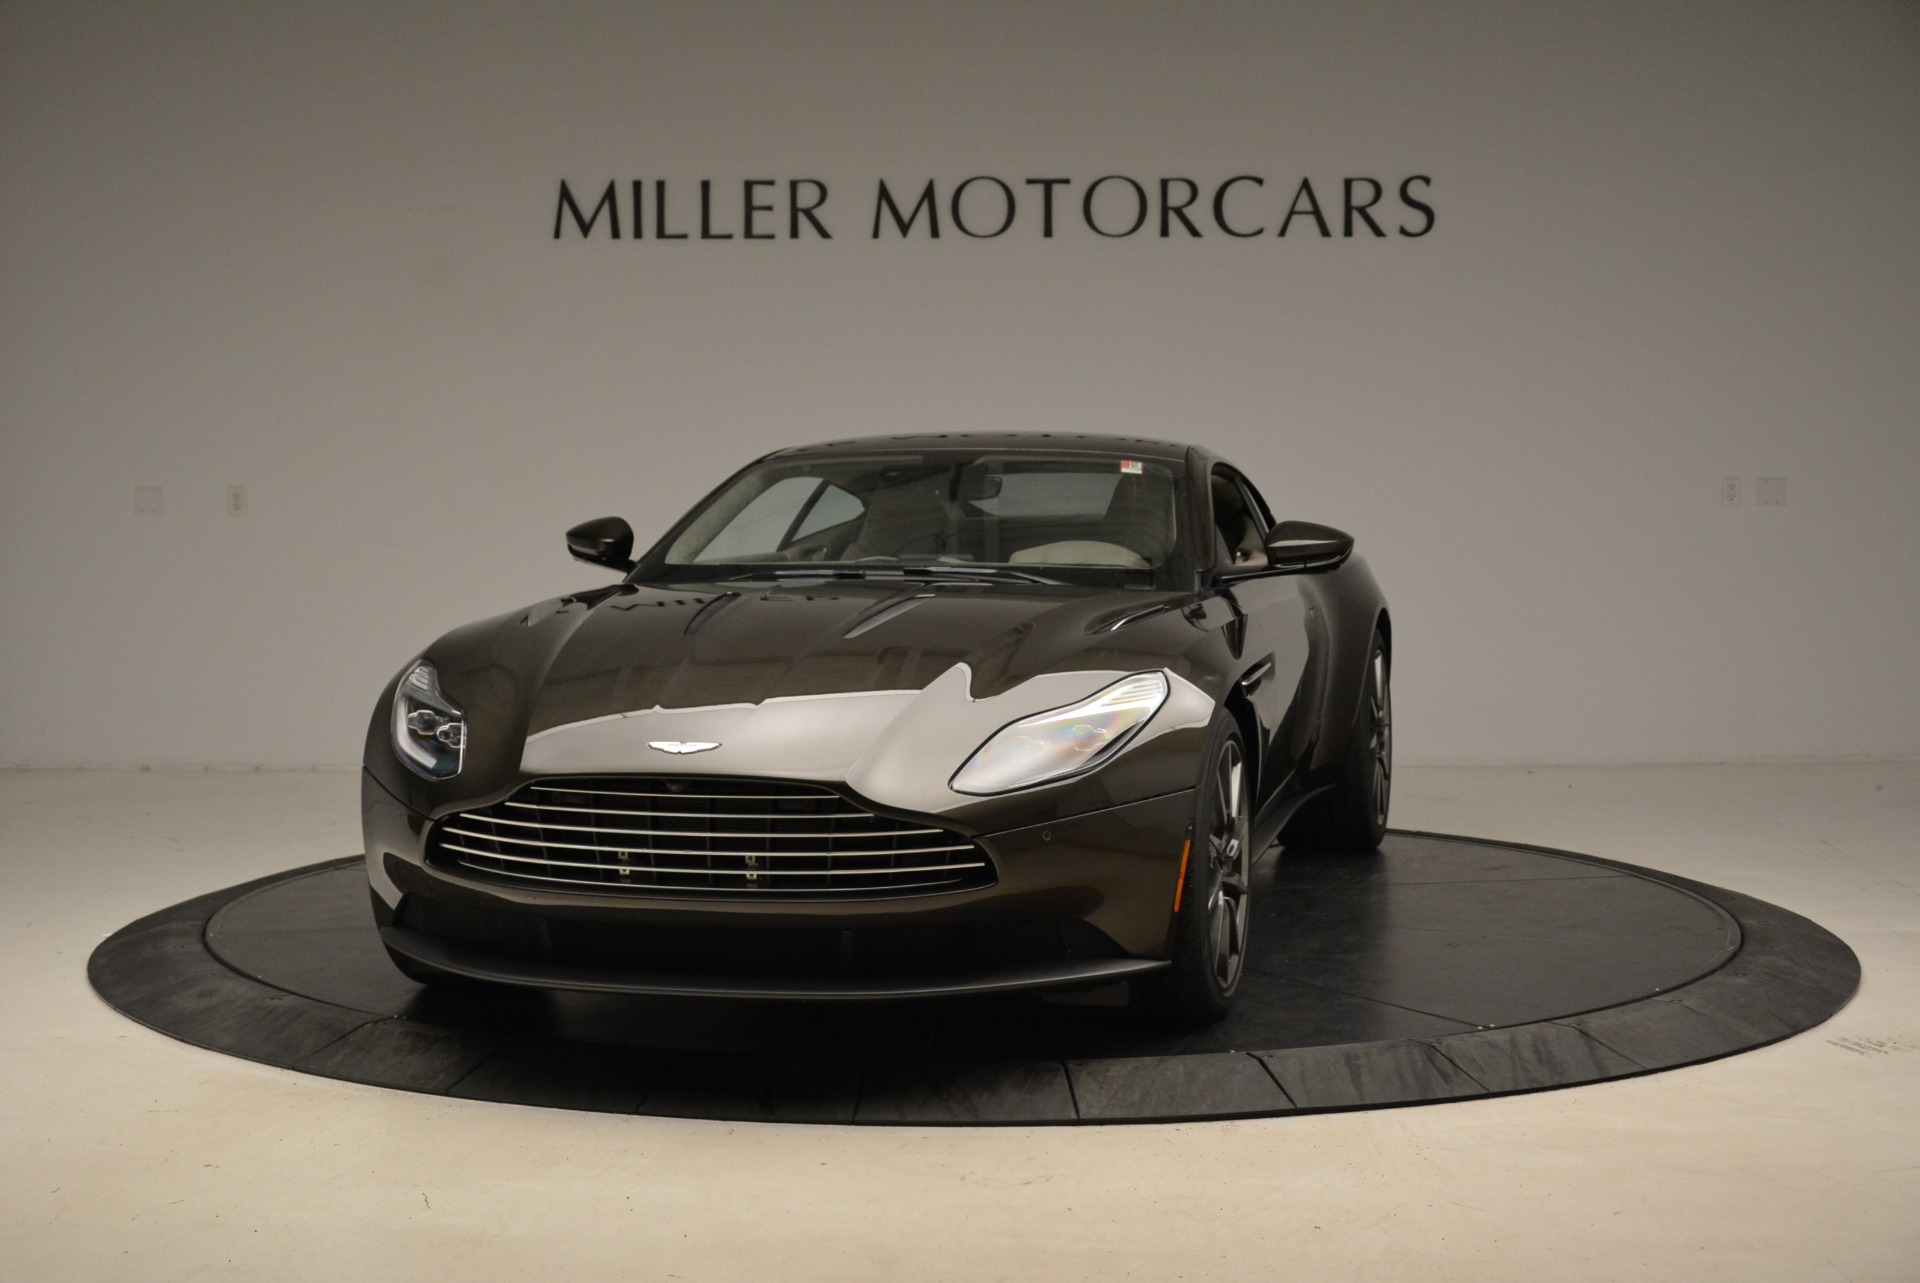 New 2018 Aston Martin DB11 V12 For Sale In Westport, CT 1904_main